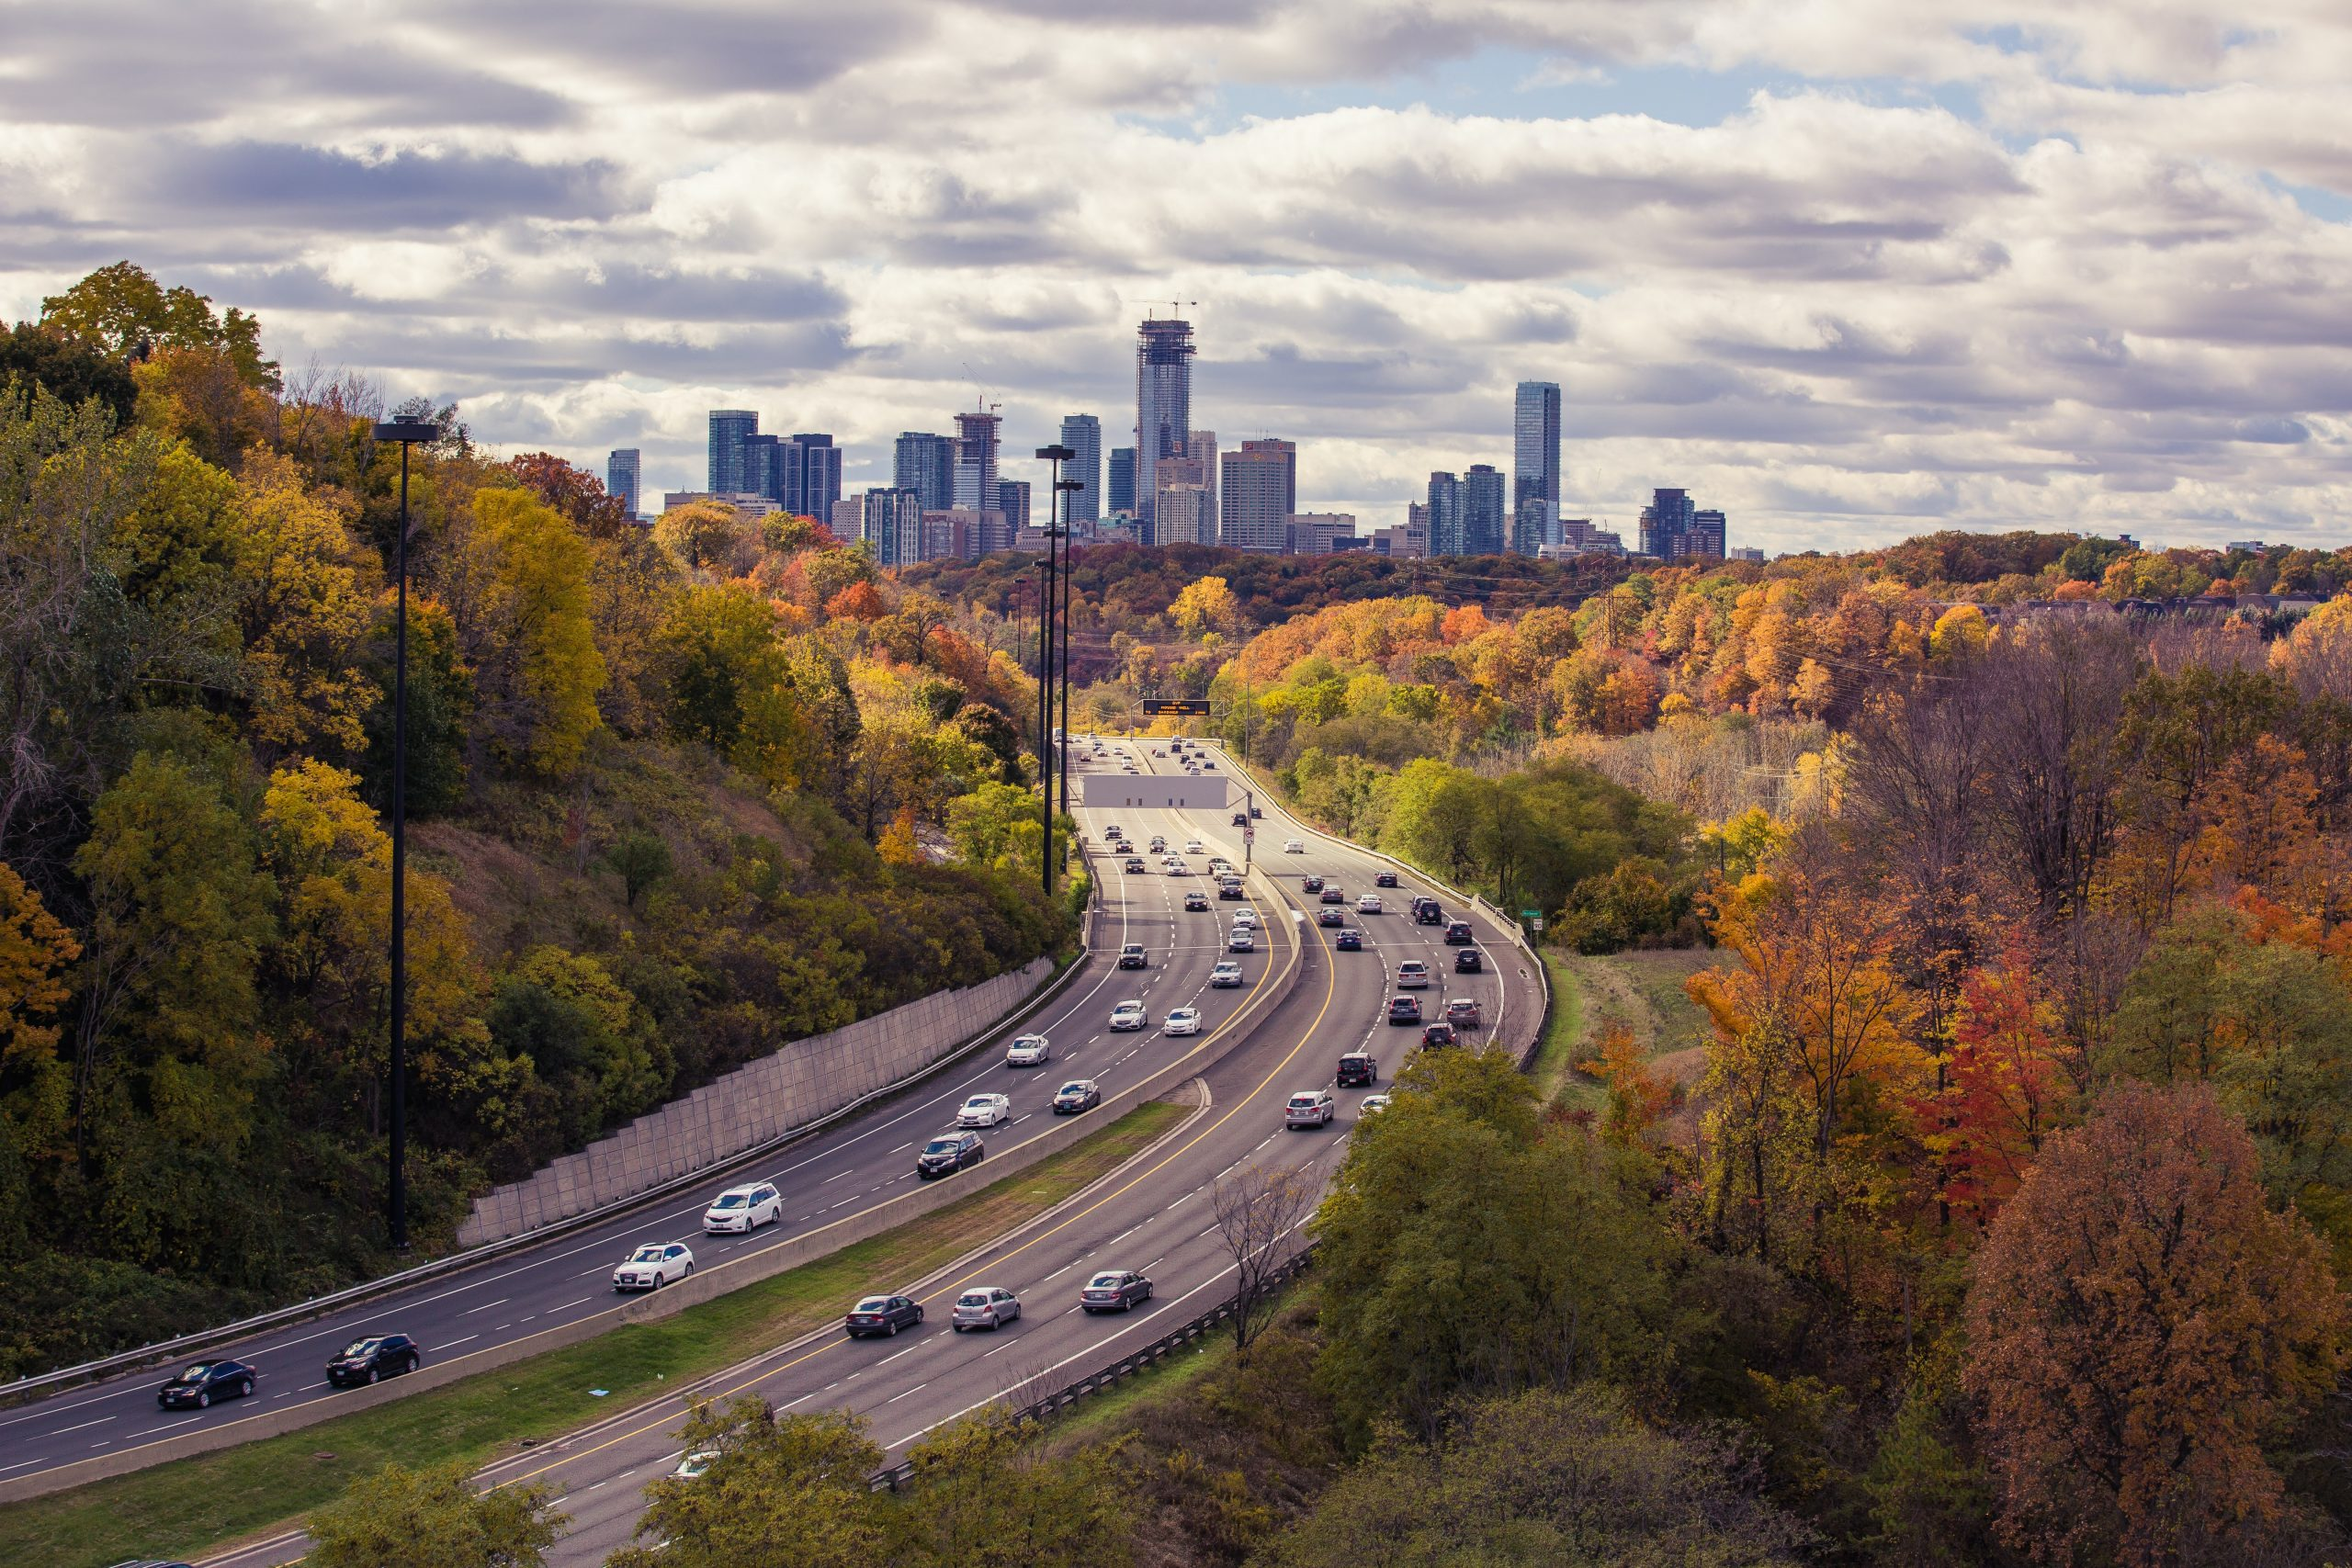 Pantonium Awarded $2 million from Sustainable Development Technology Canada to Develop On-Demand Transit Software